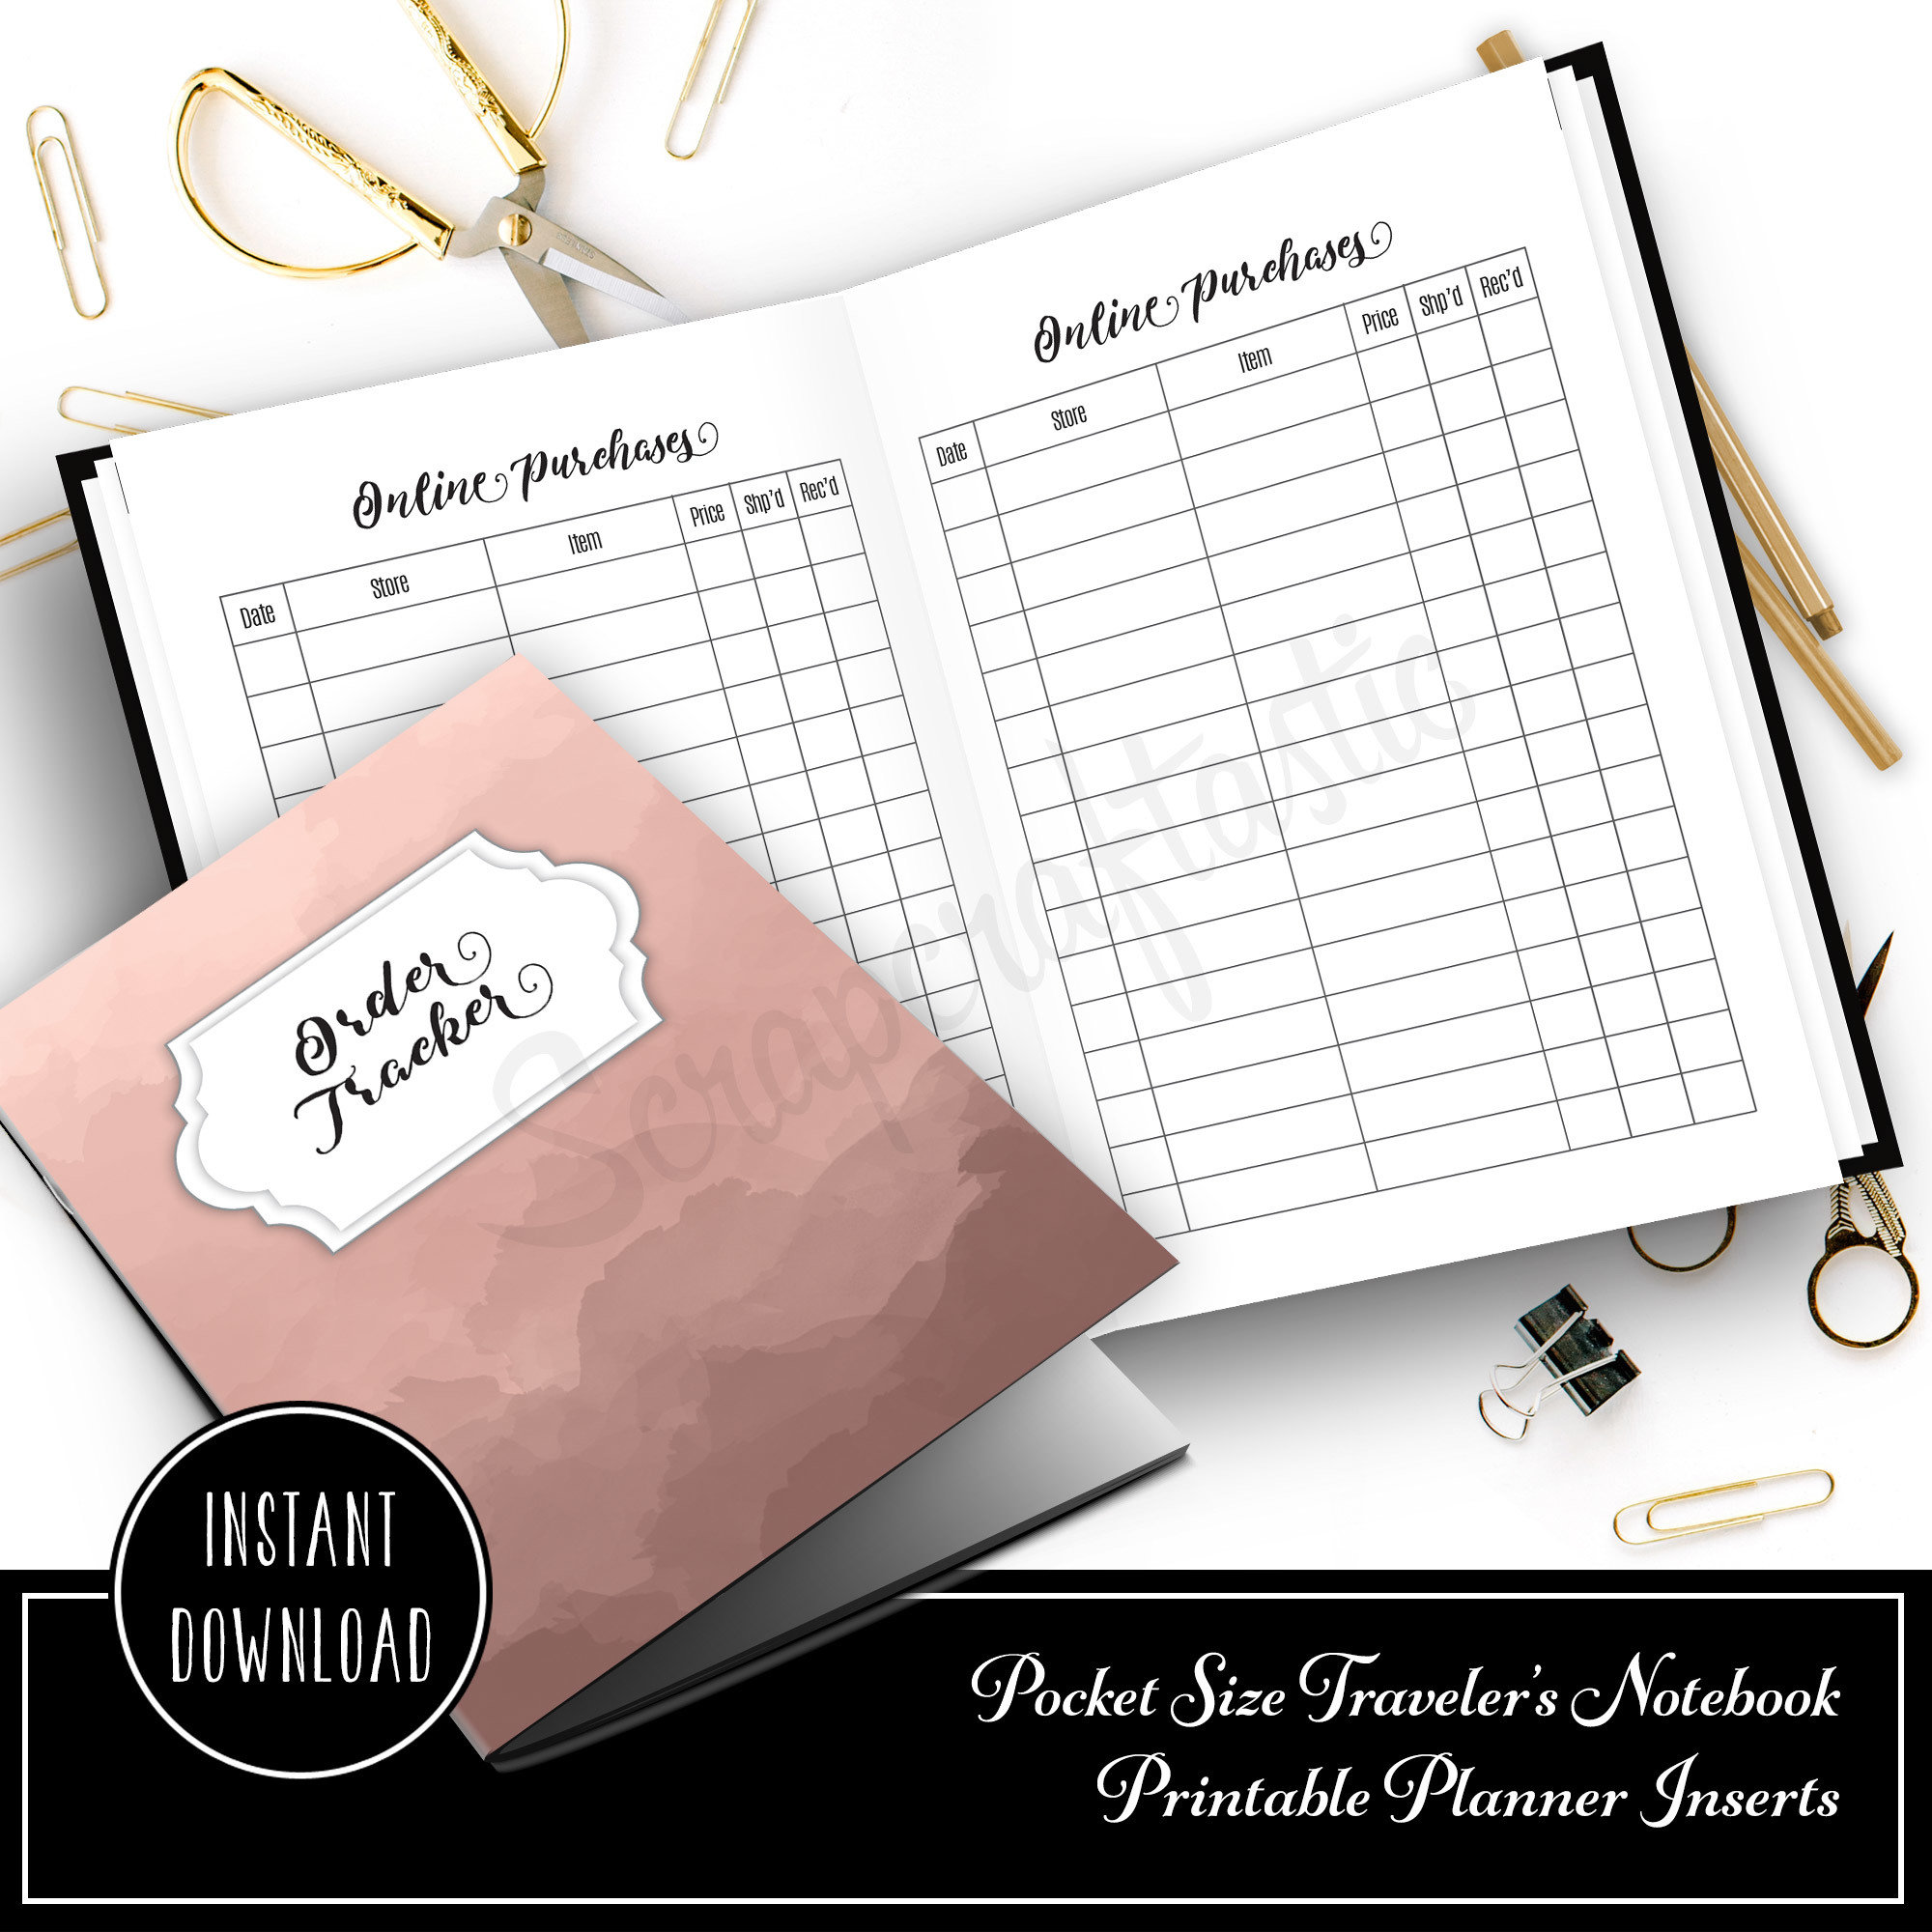 Online Purchase/Order Tracker Pocket Size Traveler's Notebook Printable Planner Inserts 10007